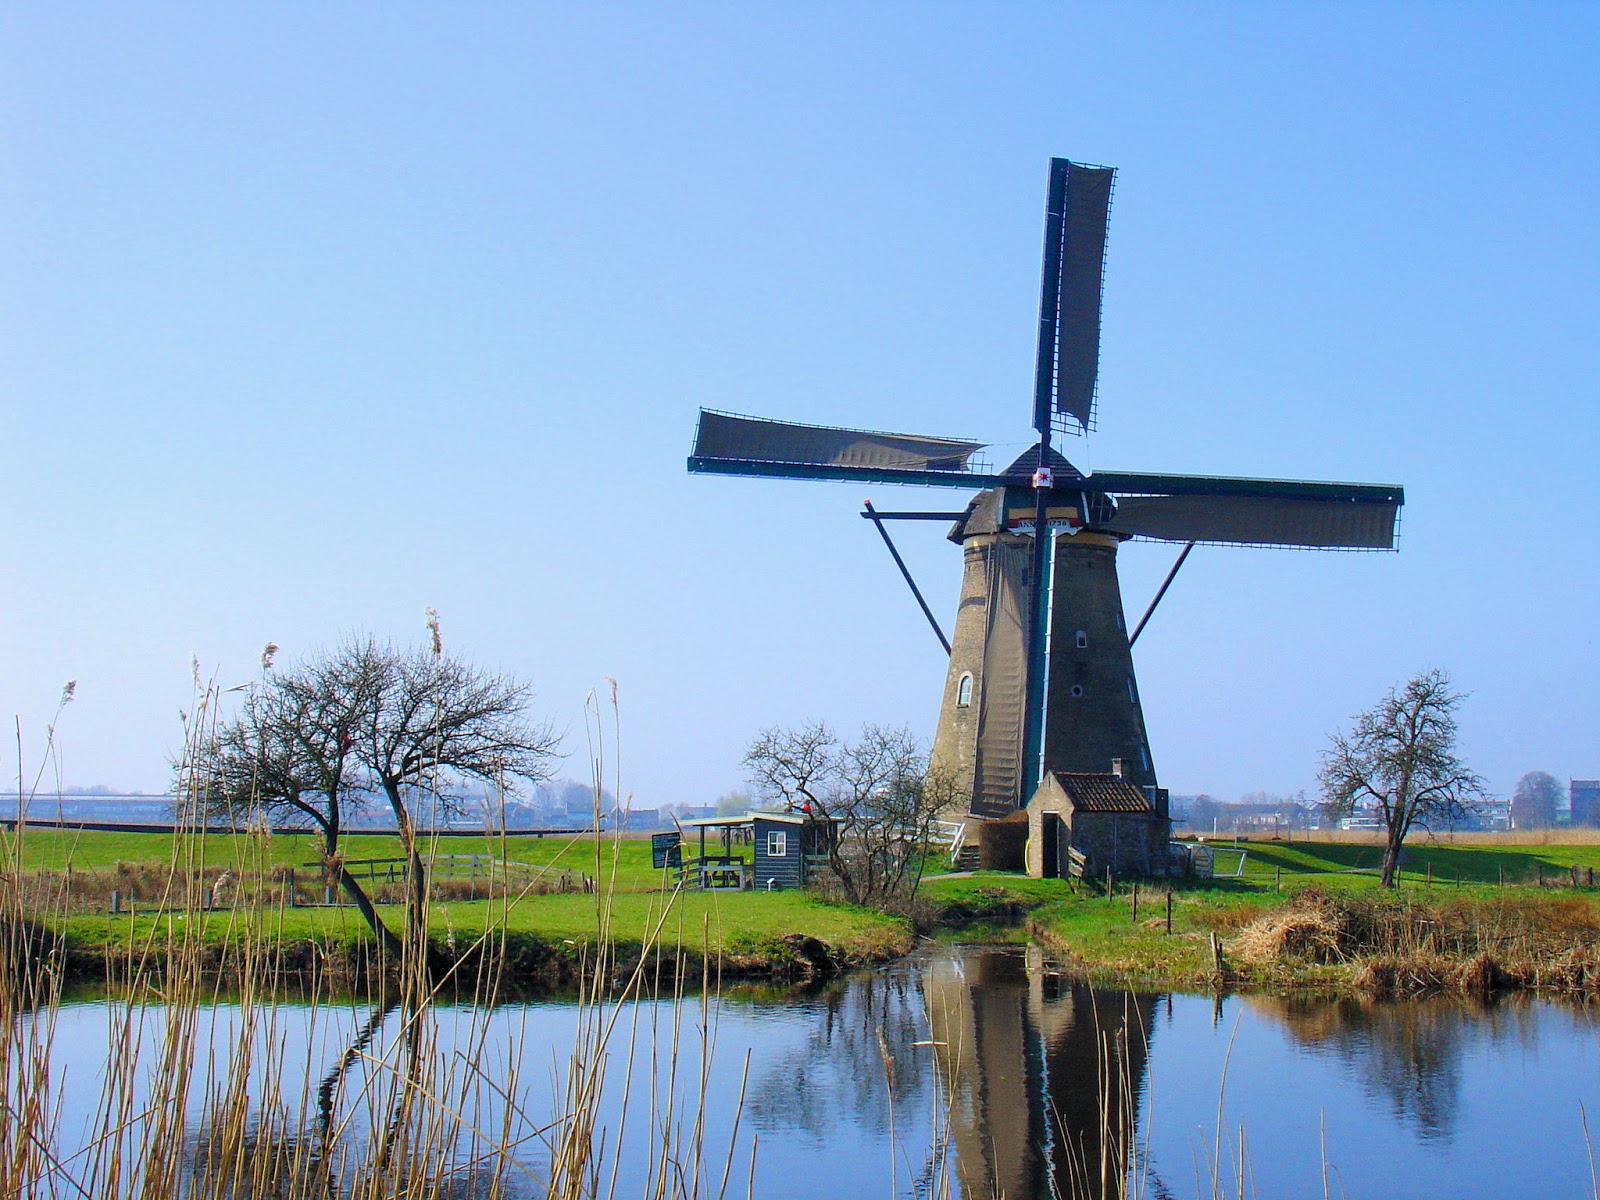 Whimsical Windmills of Kinderdijk in the Netherlands ...